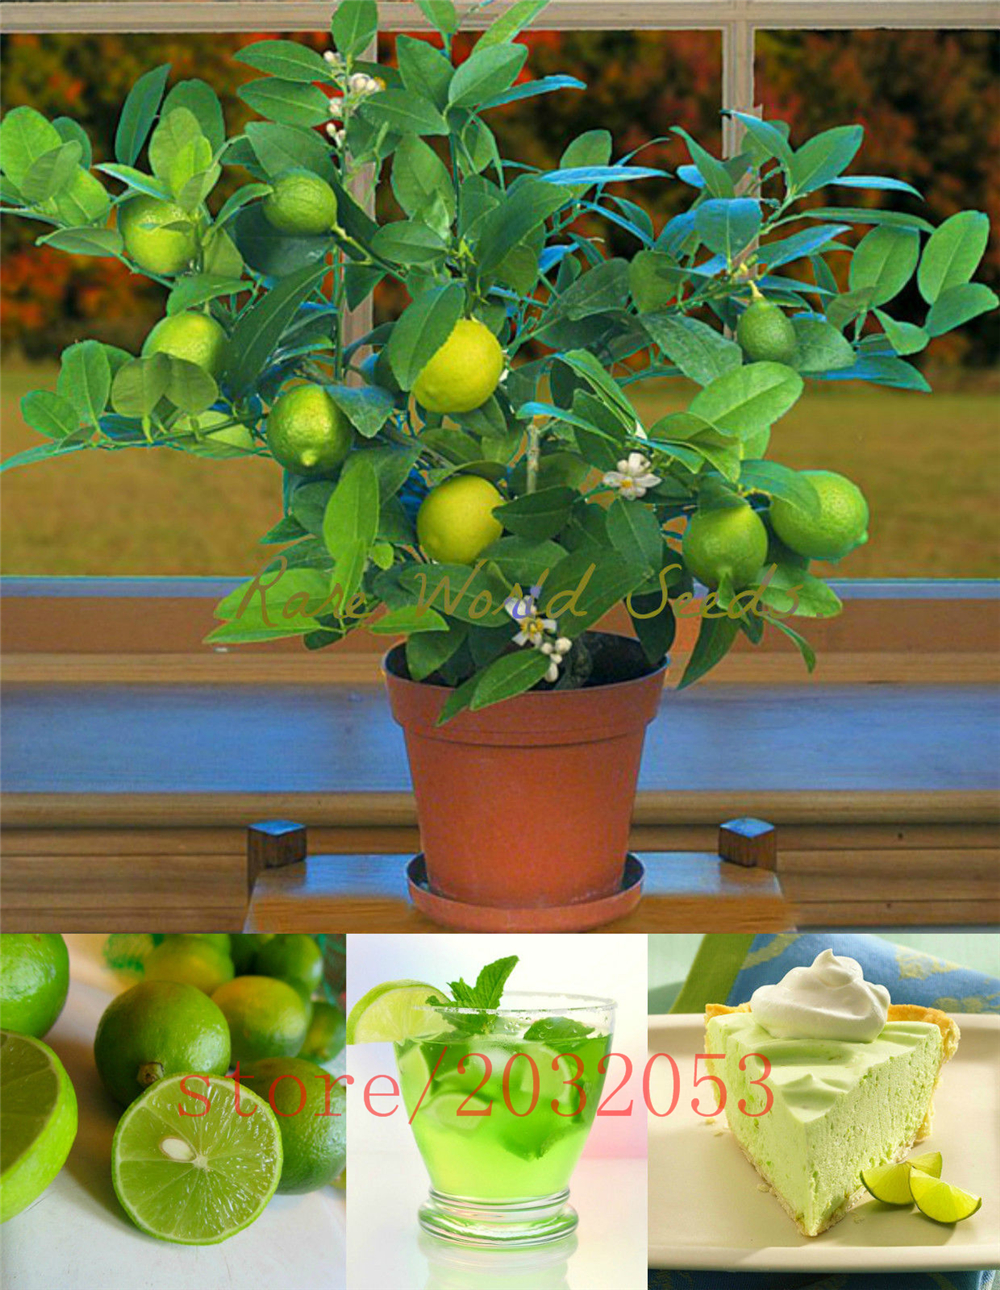 20pcs bag kaffir lime seeds lime seeds citrus - Gardeners supply company coupon code ...